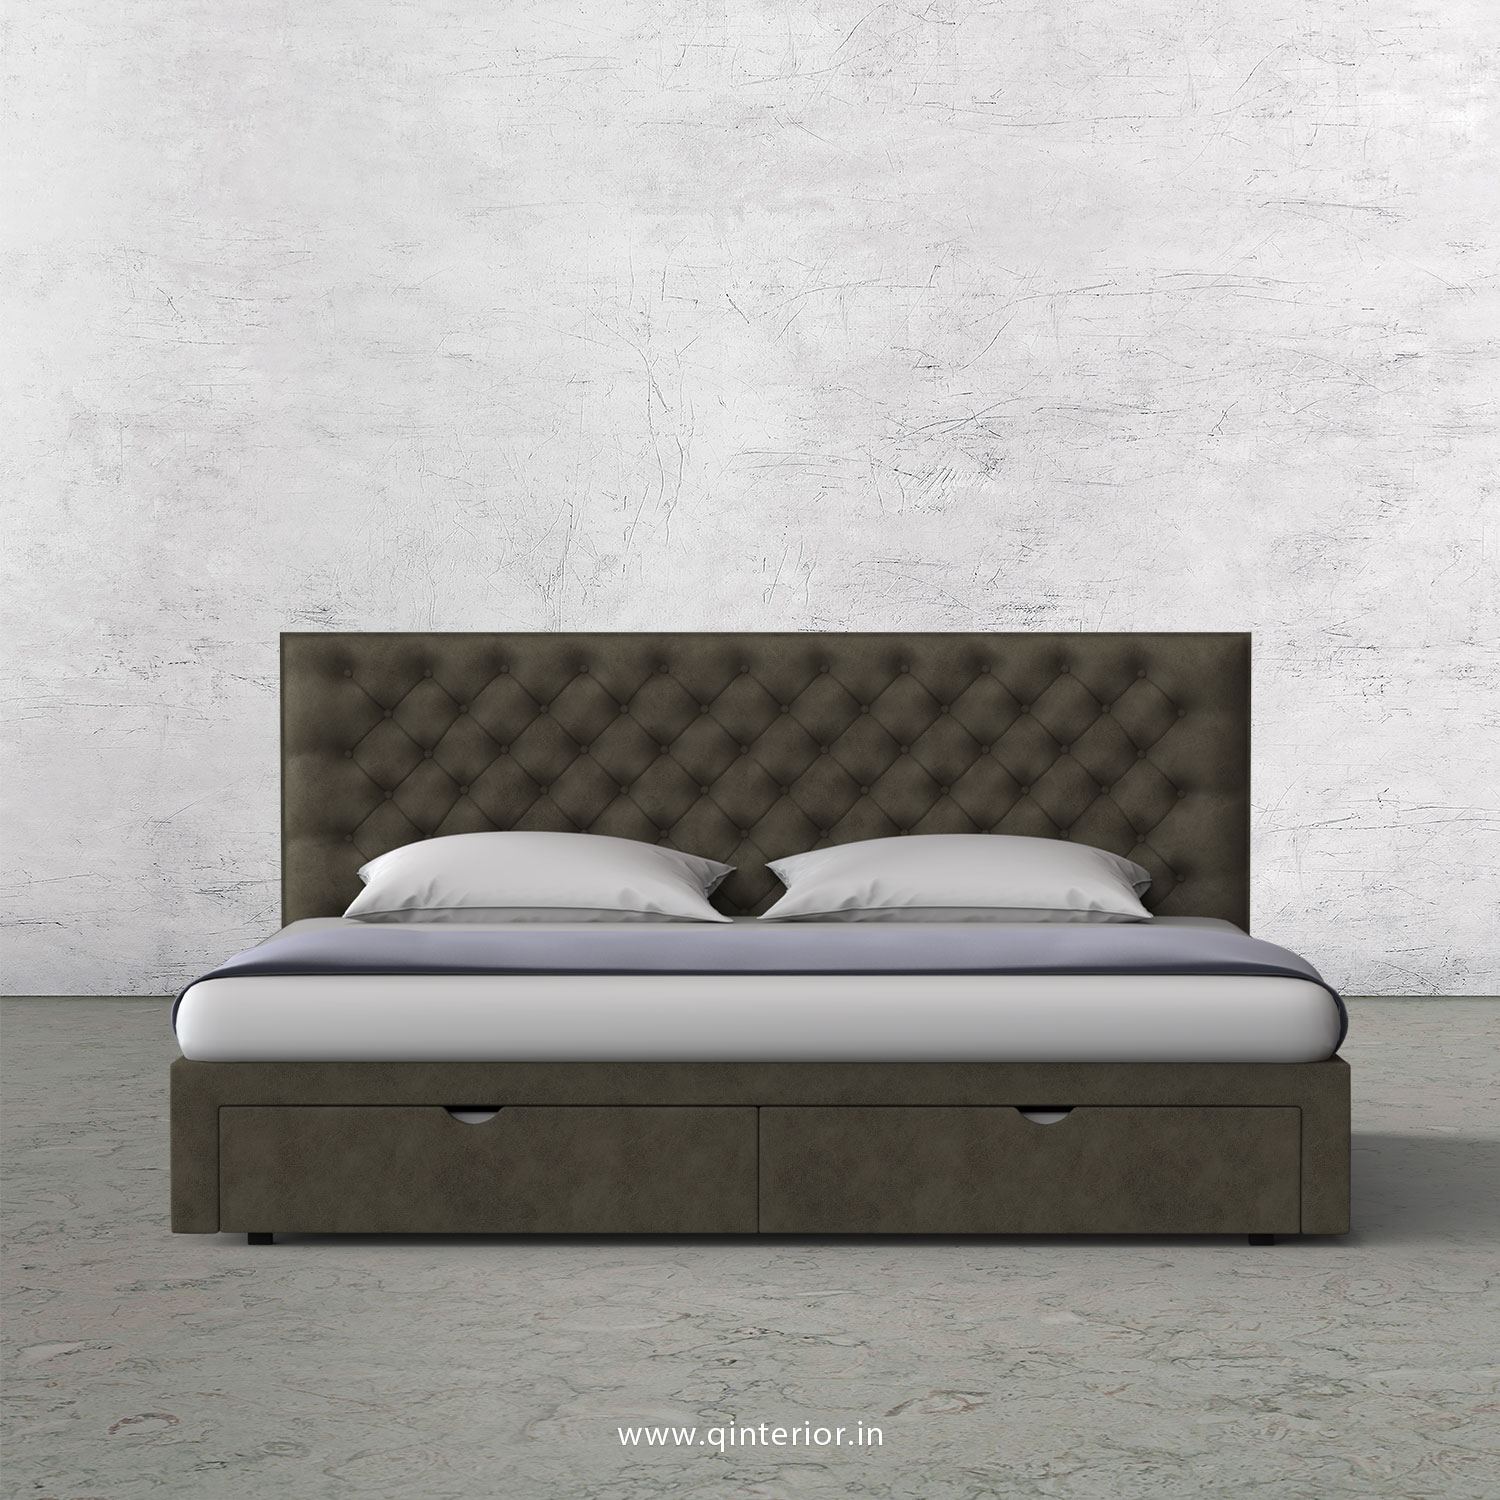 Orion King Size Storage Bed in Fab Leather Fabric - KBD001 FL03